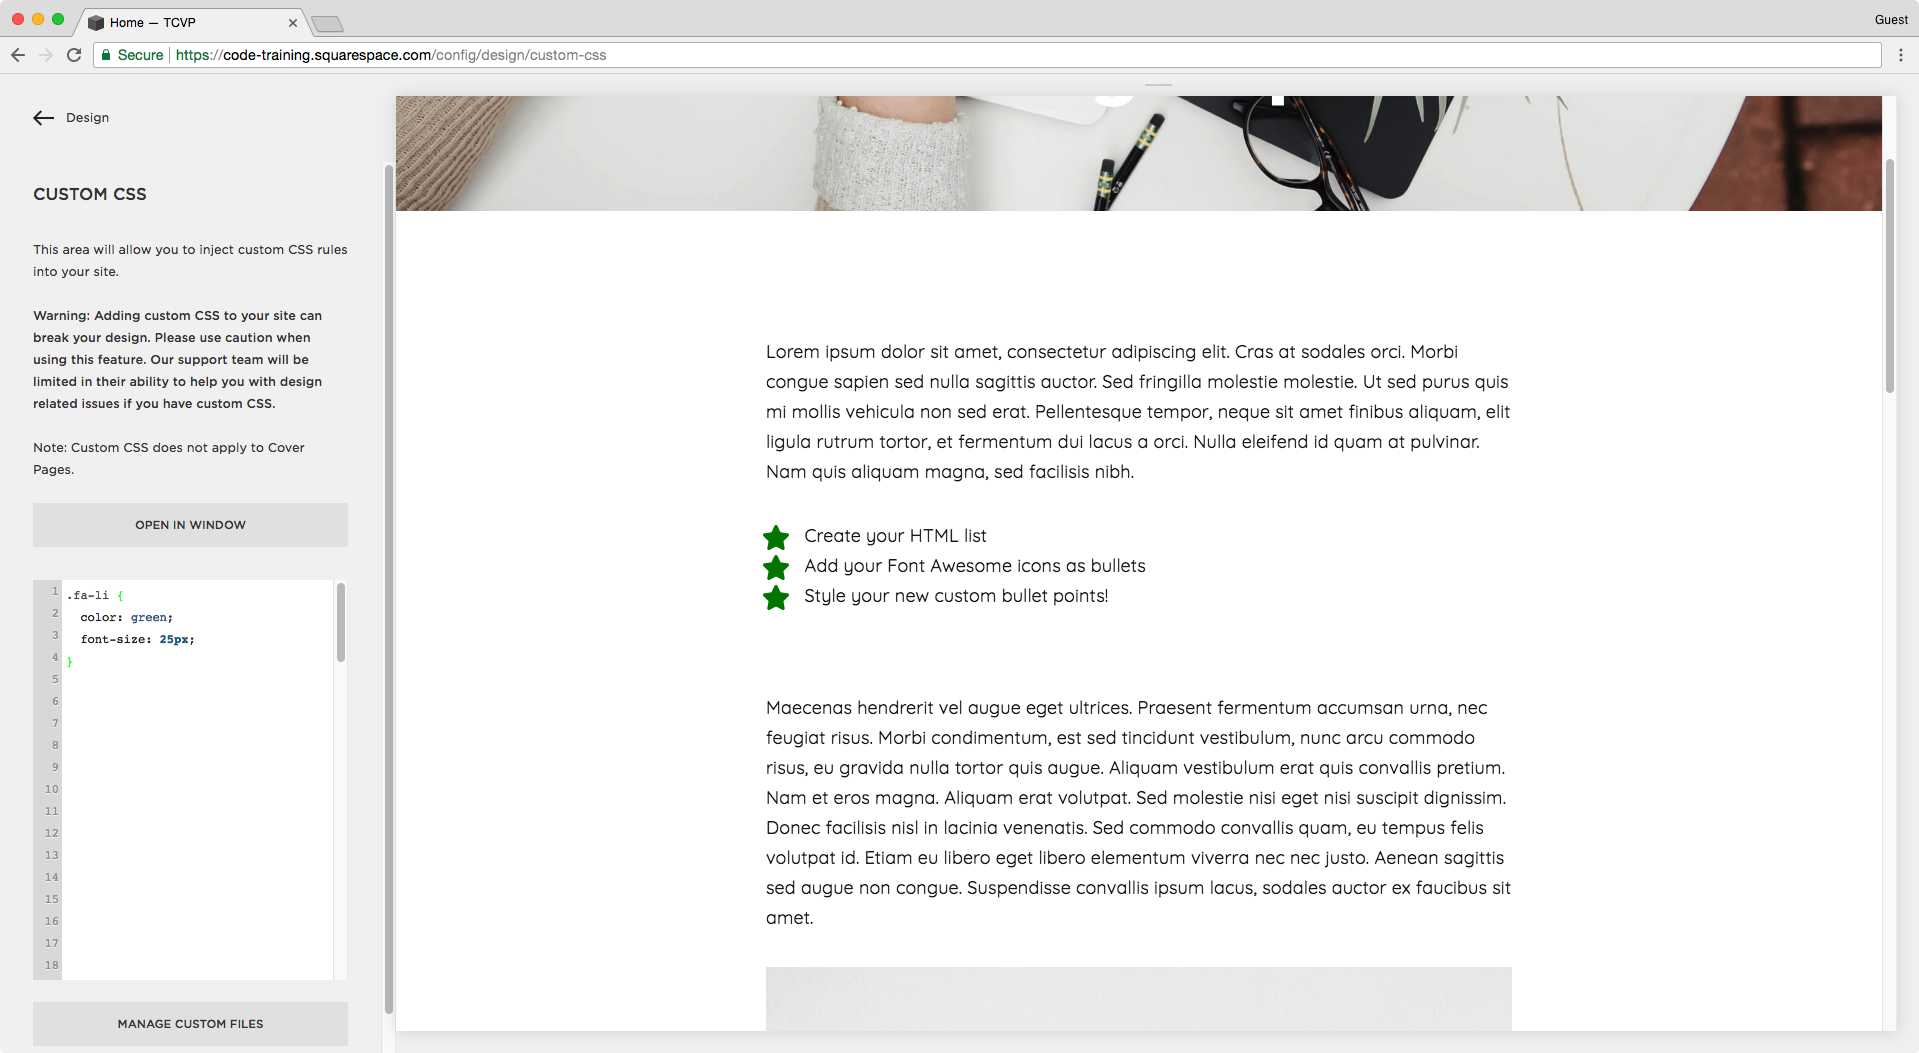 Adding styles to the custom CSS injection window in Squarespace.